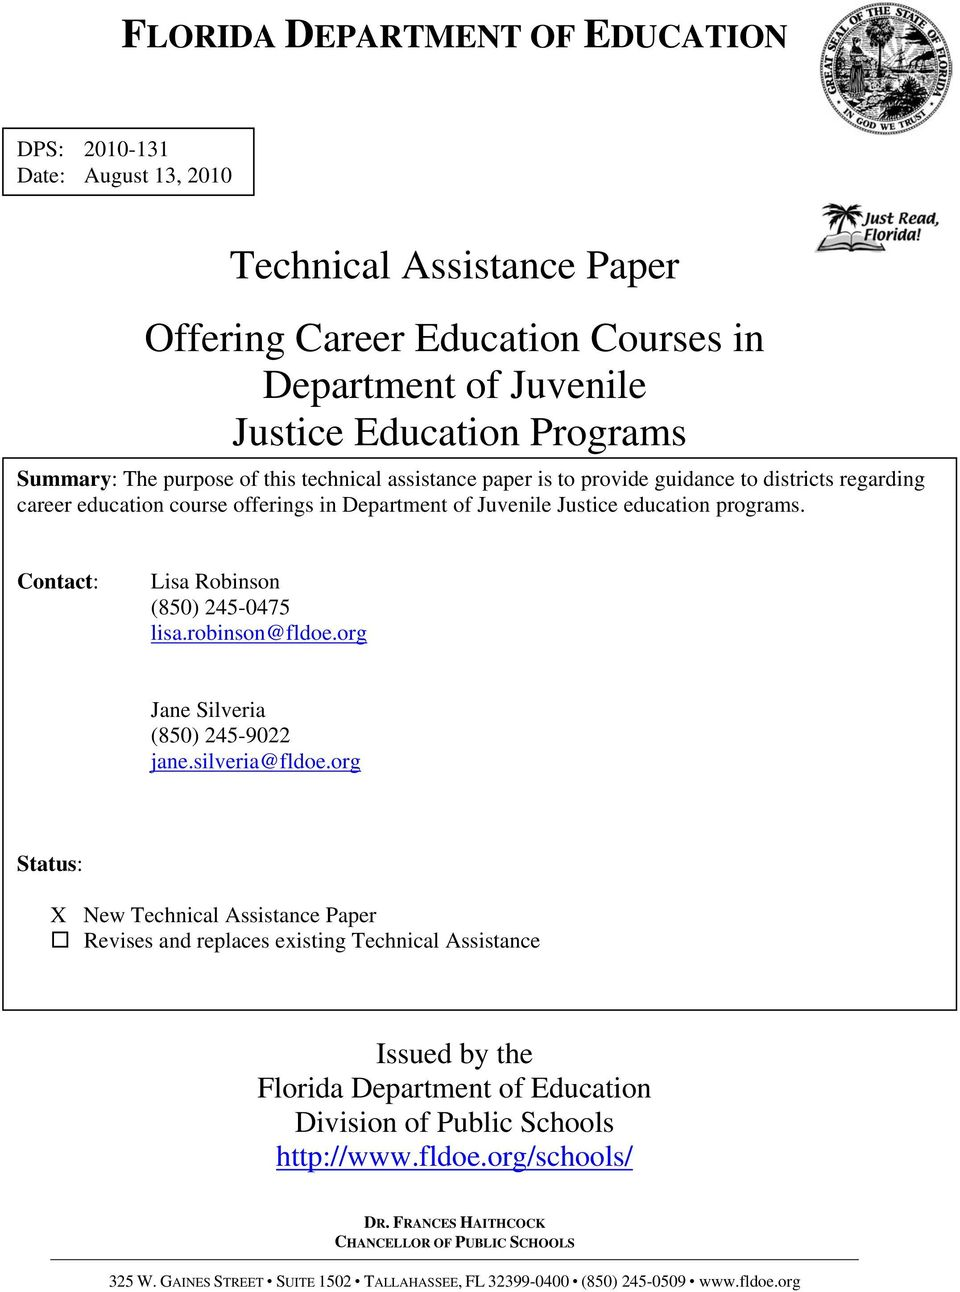 paper is to provide guidance to districts regarding career education course offerings in Department of Juvenile Justice education programs. Contact: Lisa Robinson (850) 245-0475 lisa.robinson@fldoe.